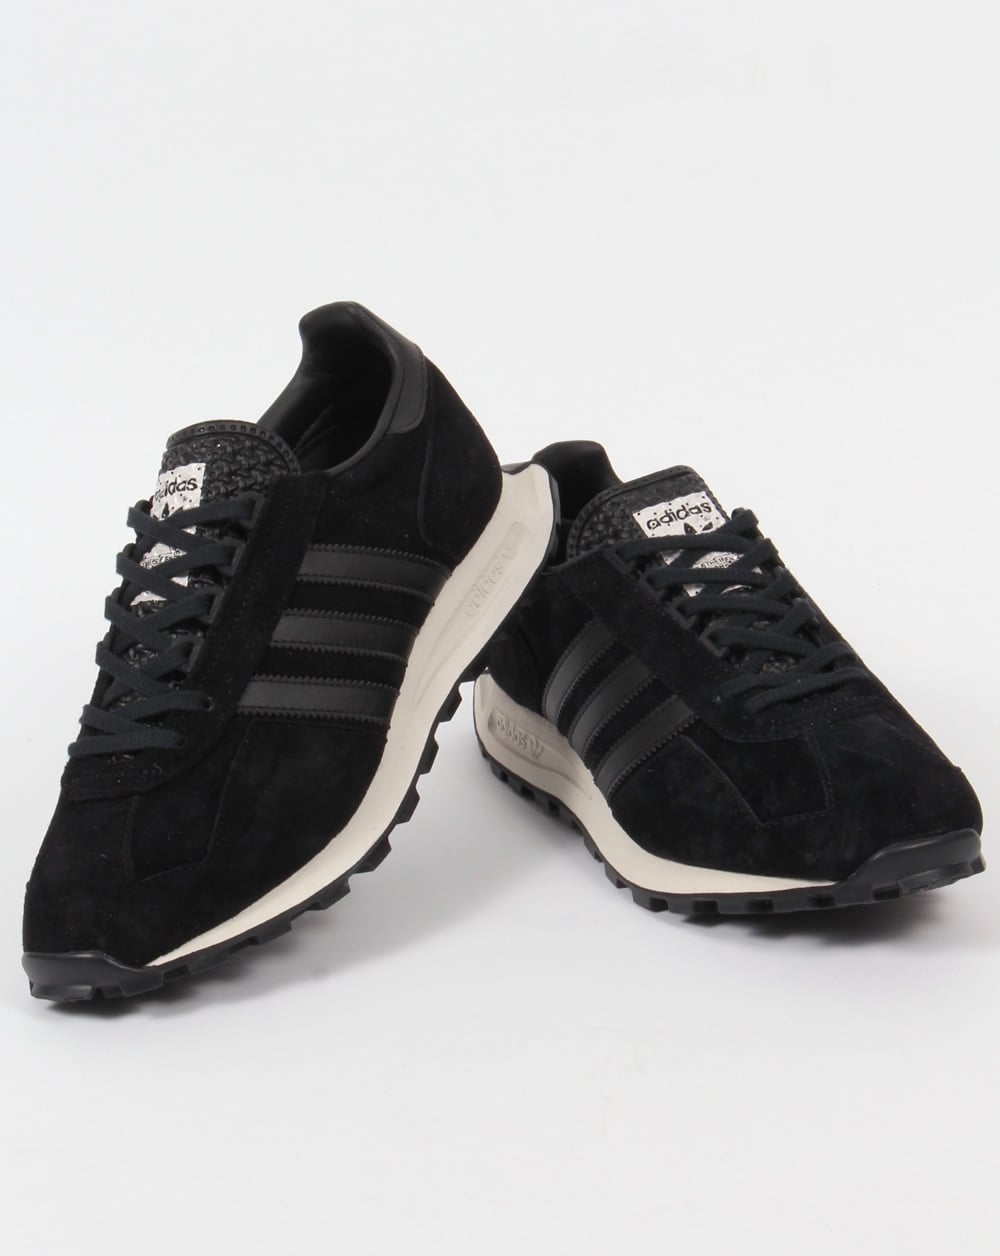 adidas formel 1 trainers black white racing originals 80s casuals. Black Bedroom Furniture Sets. Home Design Ideas